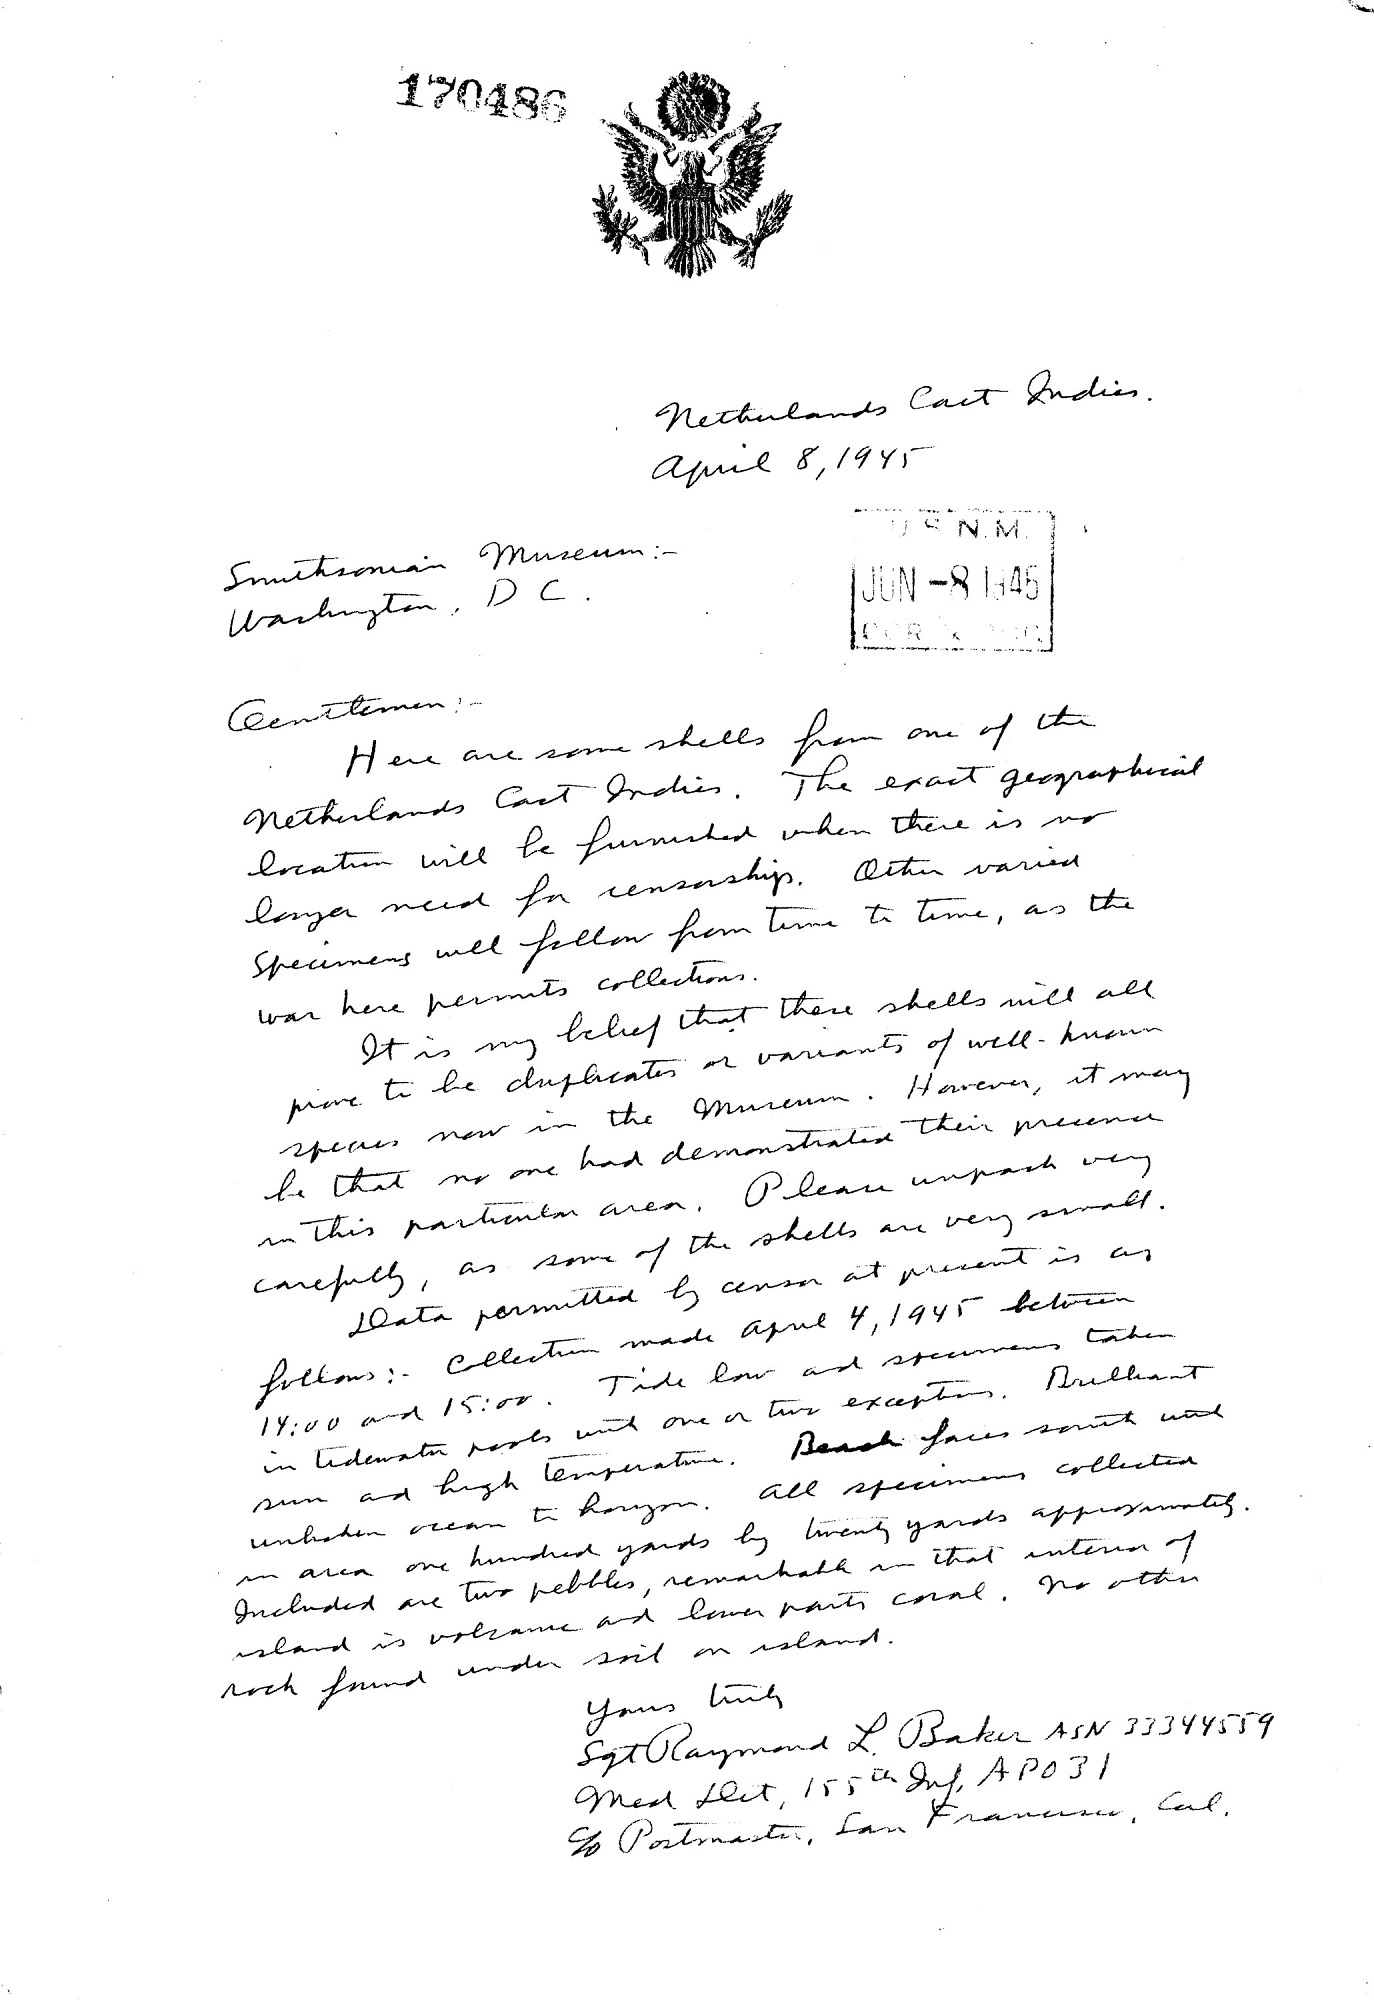 Letter from Sgt. Raymond L. Baker to the Smithsonian Museum, April 8, 1945